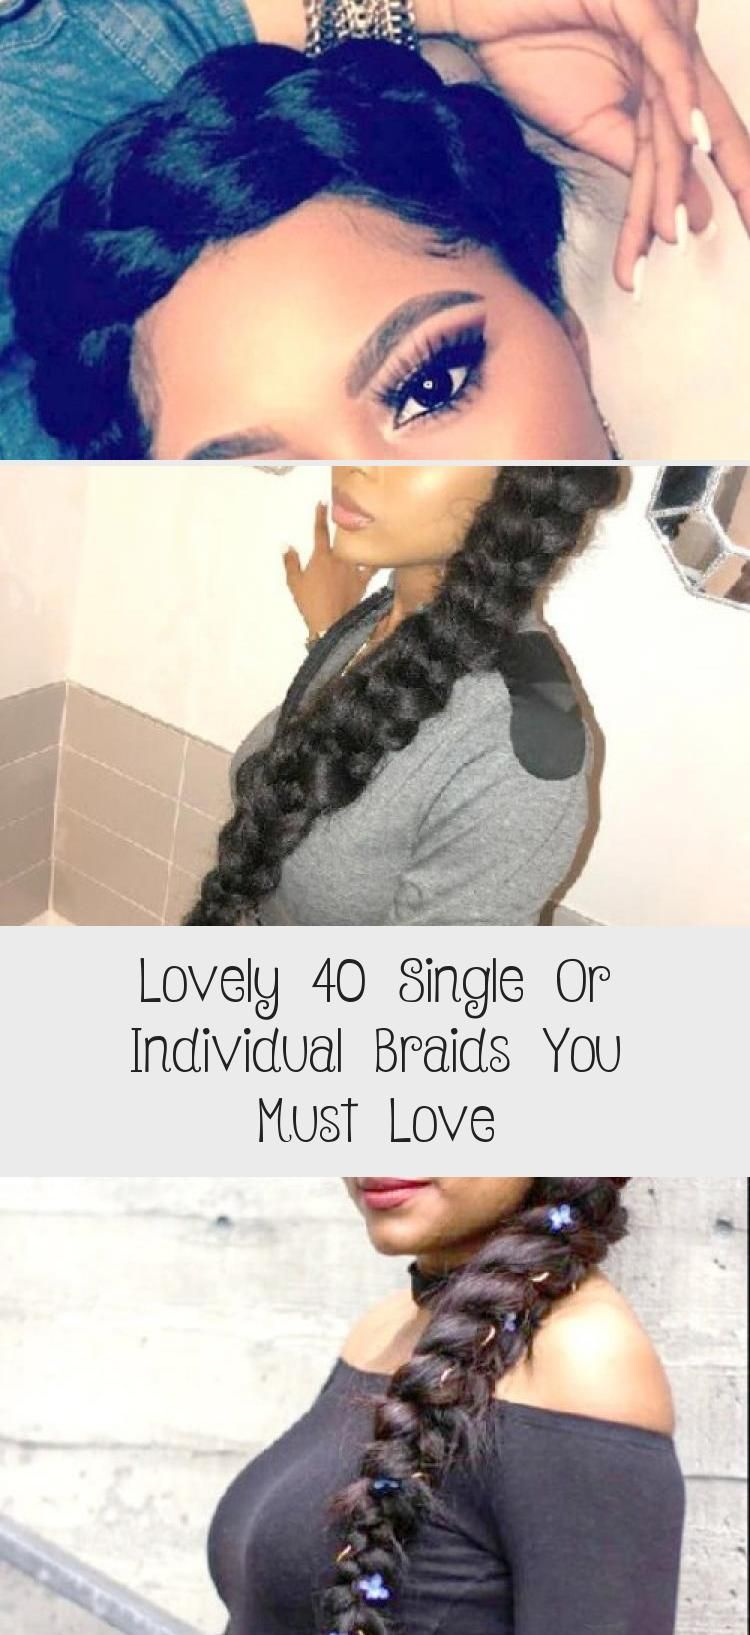 Lovely 40 Single Or Individual Braids You Must Love - Hair Styles - Hair Style Ideas